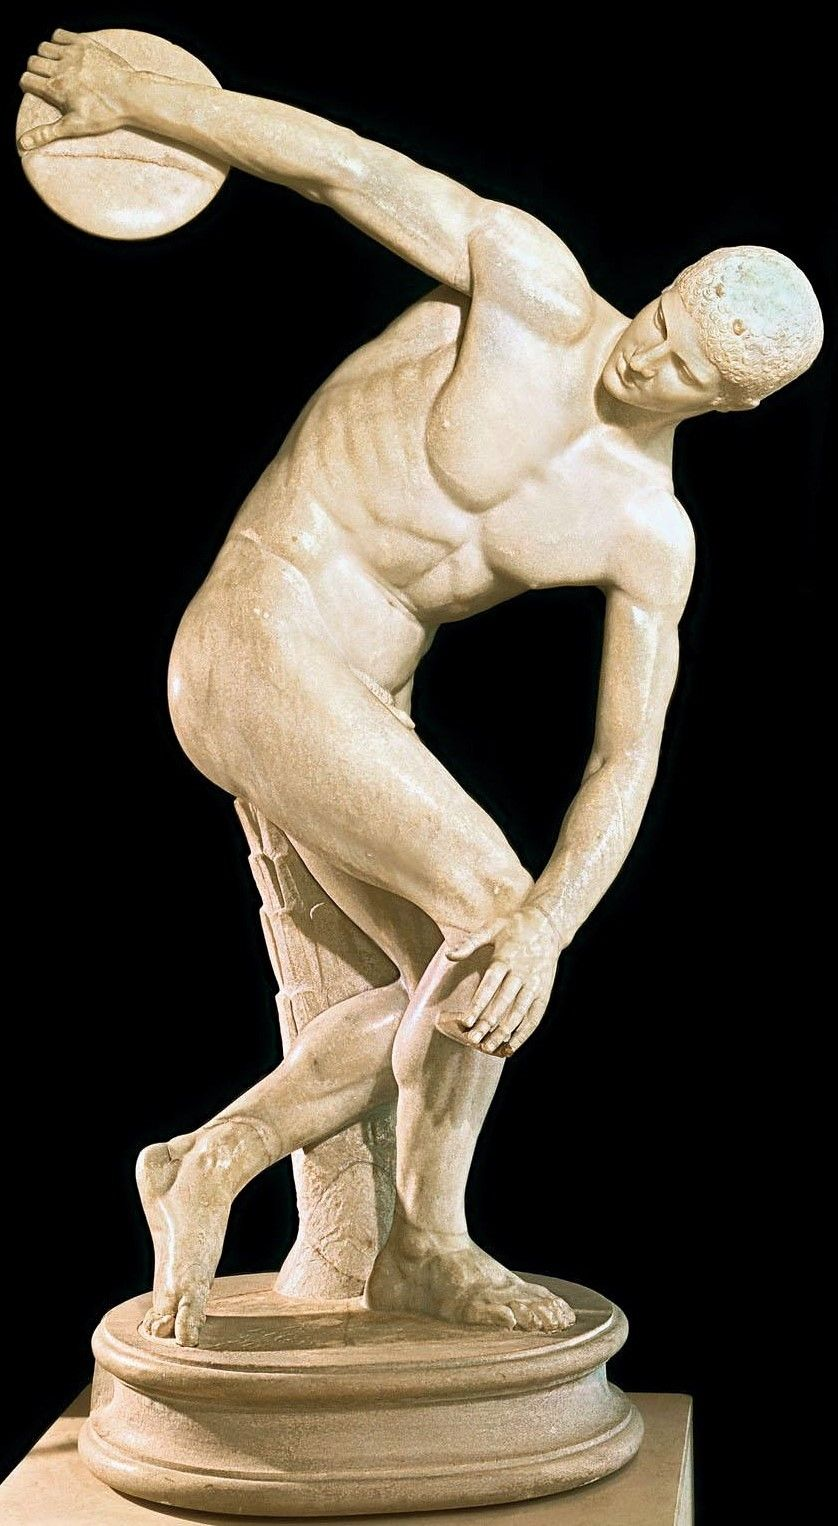 Discobolus, the Discus Thrower. The bronze original by the Greek sculptor Myron has been lost. This is a later Roman marble copy -- one of many -- of the original from 450-460 BC, in the classical period. - Palazzo Massimo alle Terme, Rome, Italy #greekstatue